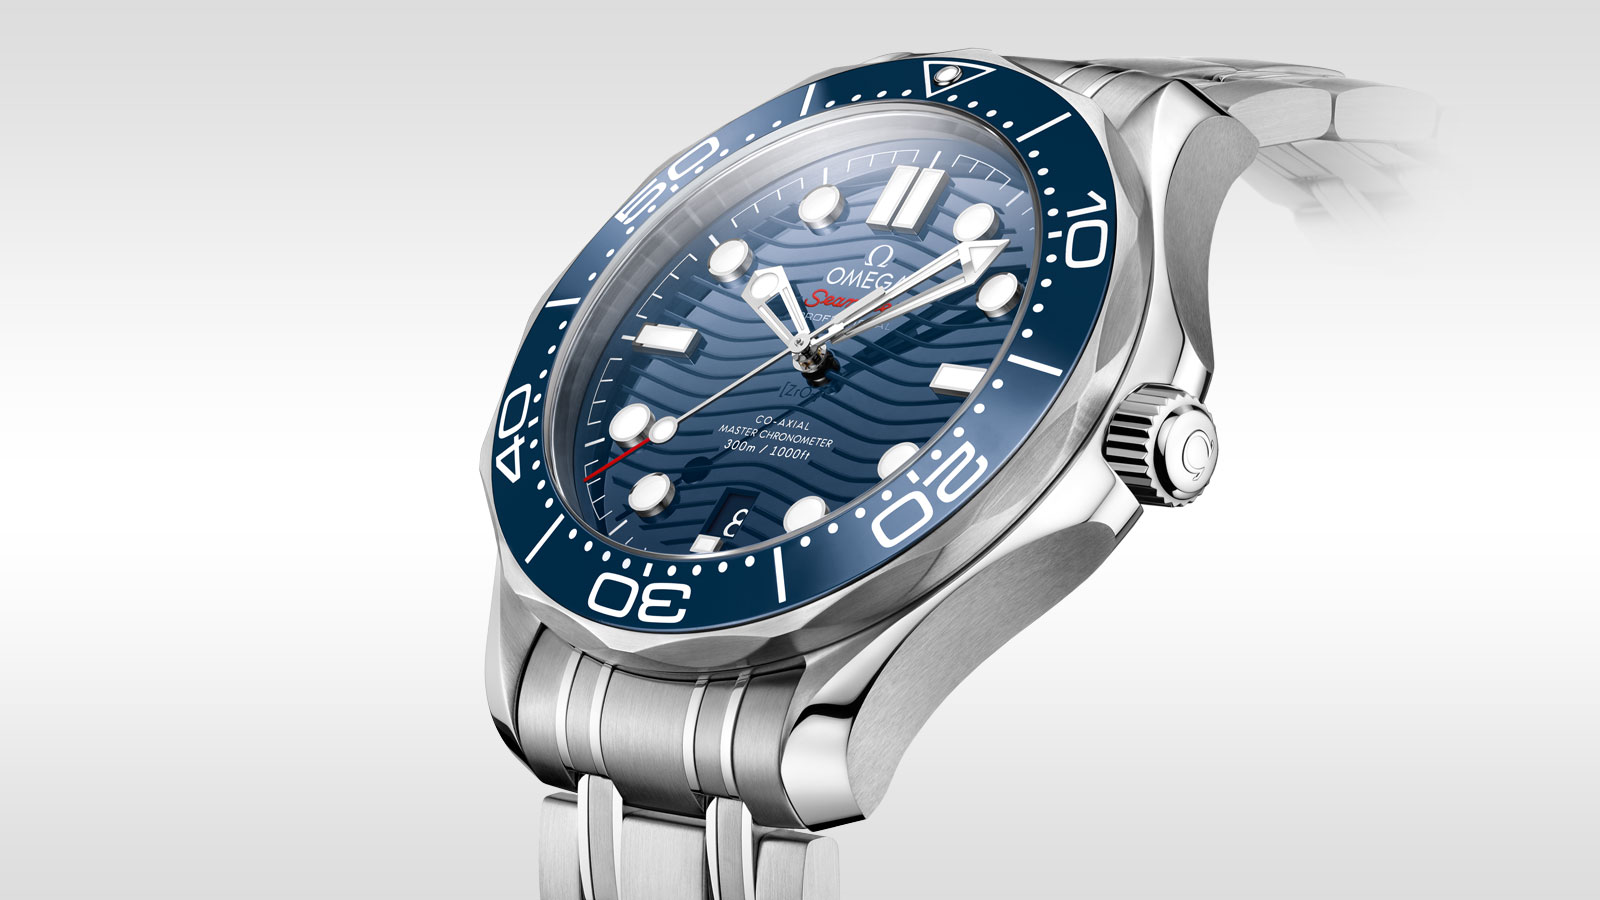 Seamaster Diver 300 M Diver 300M Omega Co‑Axial Master Chronometer 42 mm - 210.30.42.20.03.001 - View 3